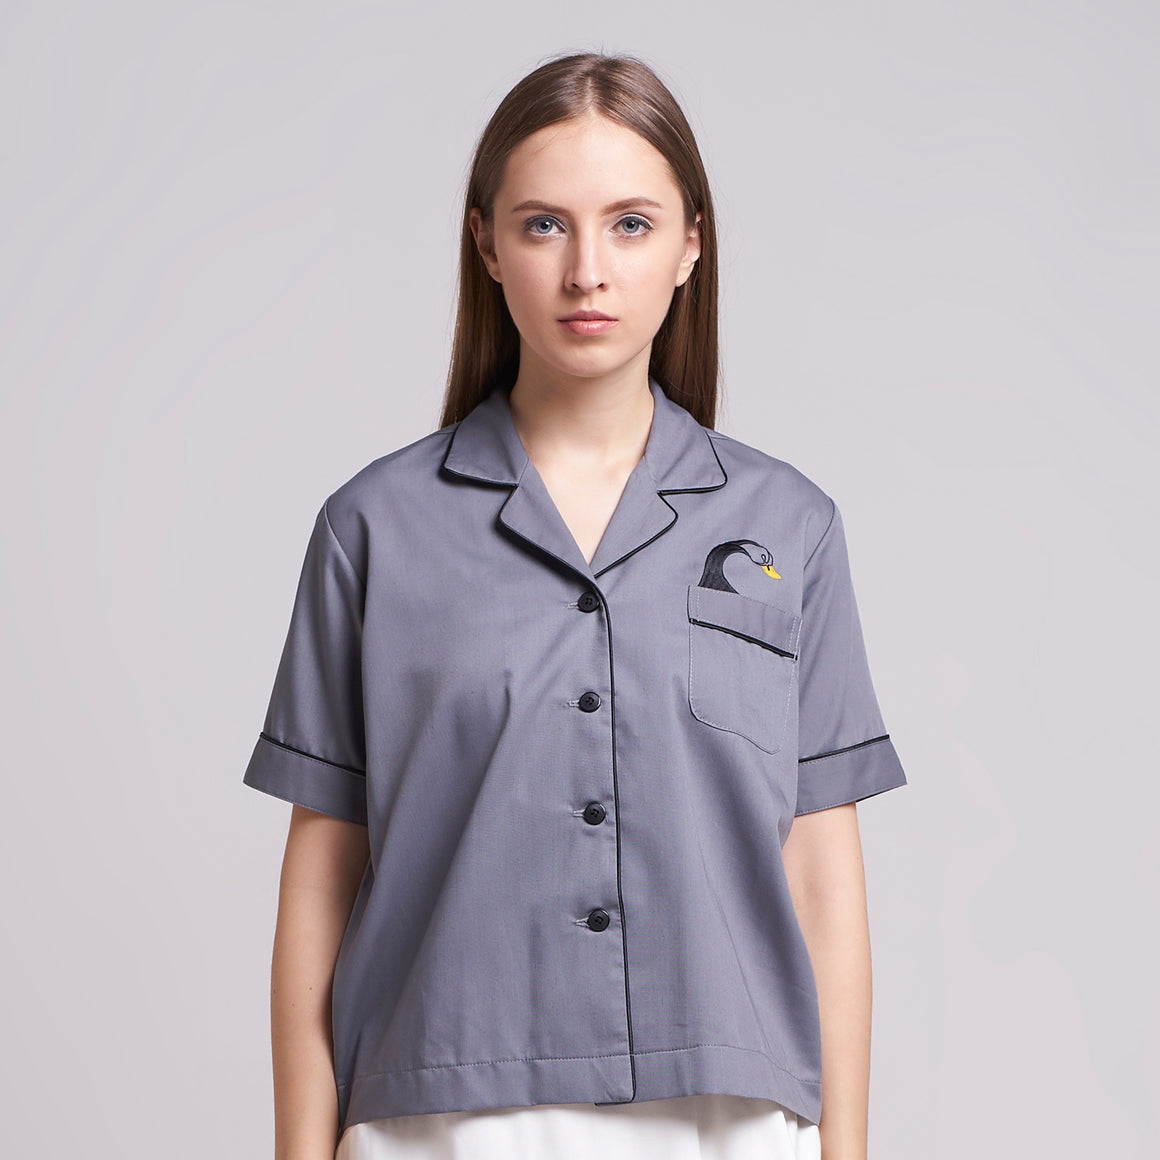 PAJA SHIRT GREY - TEMPORARY ANXIETY